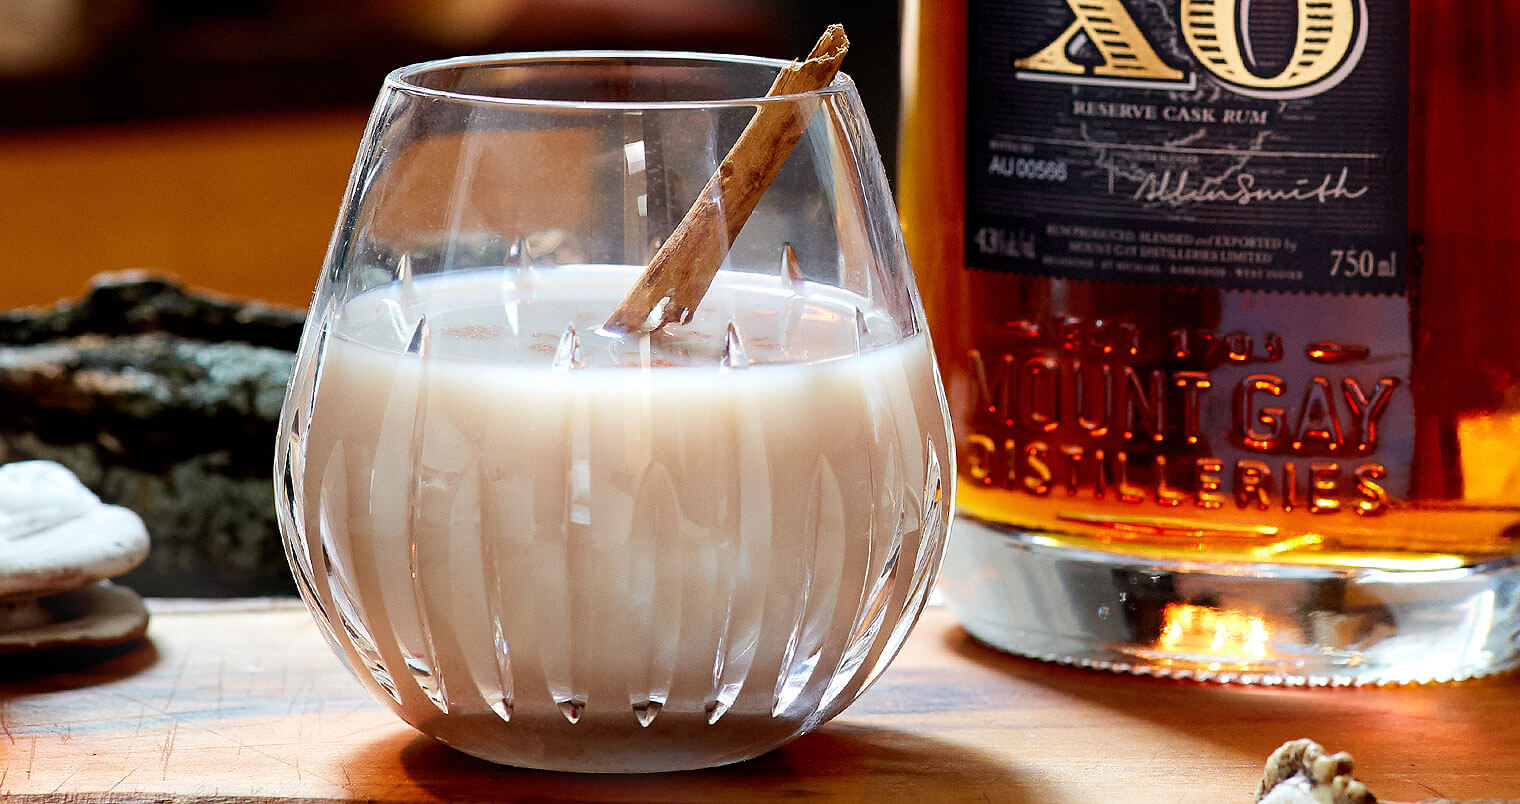 Toasted Almond, bottle and cocktail, featured image